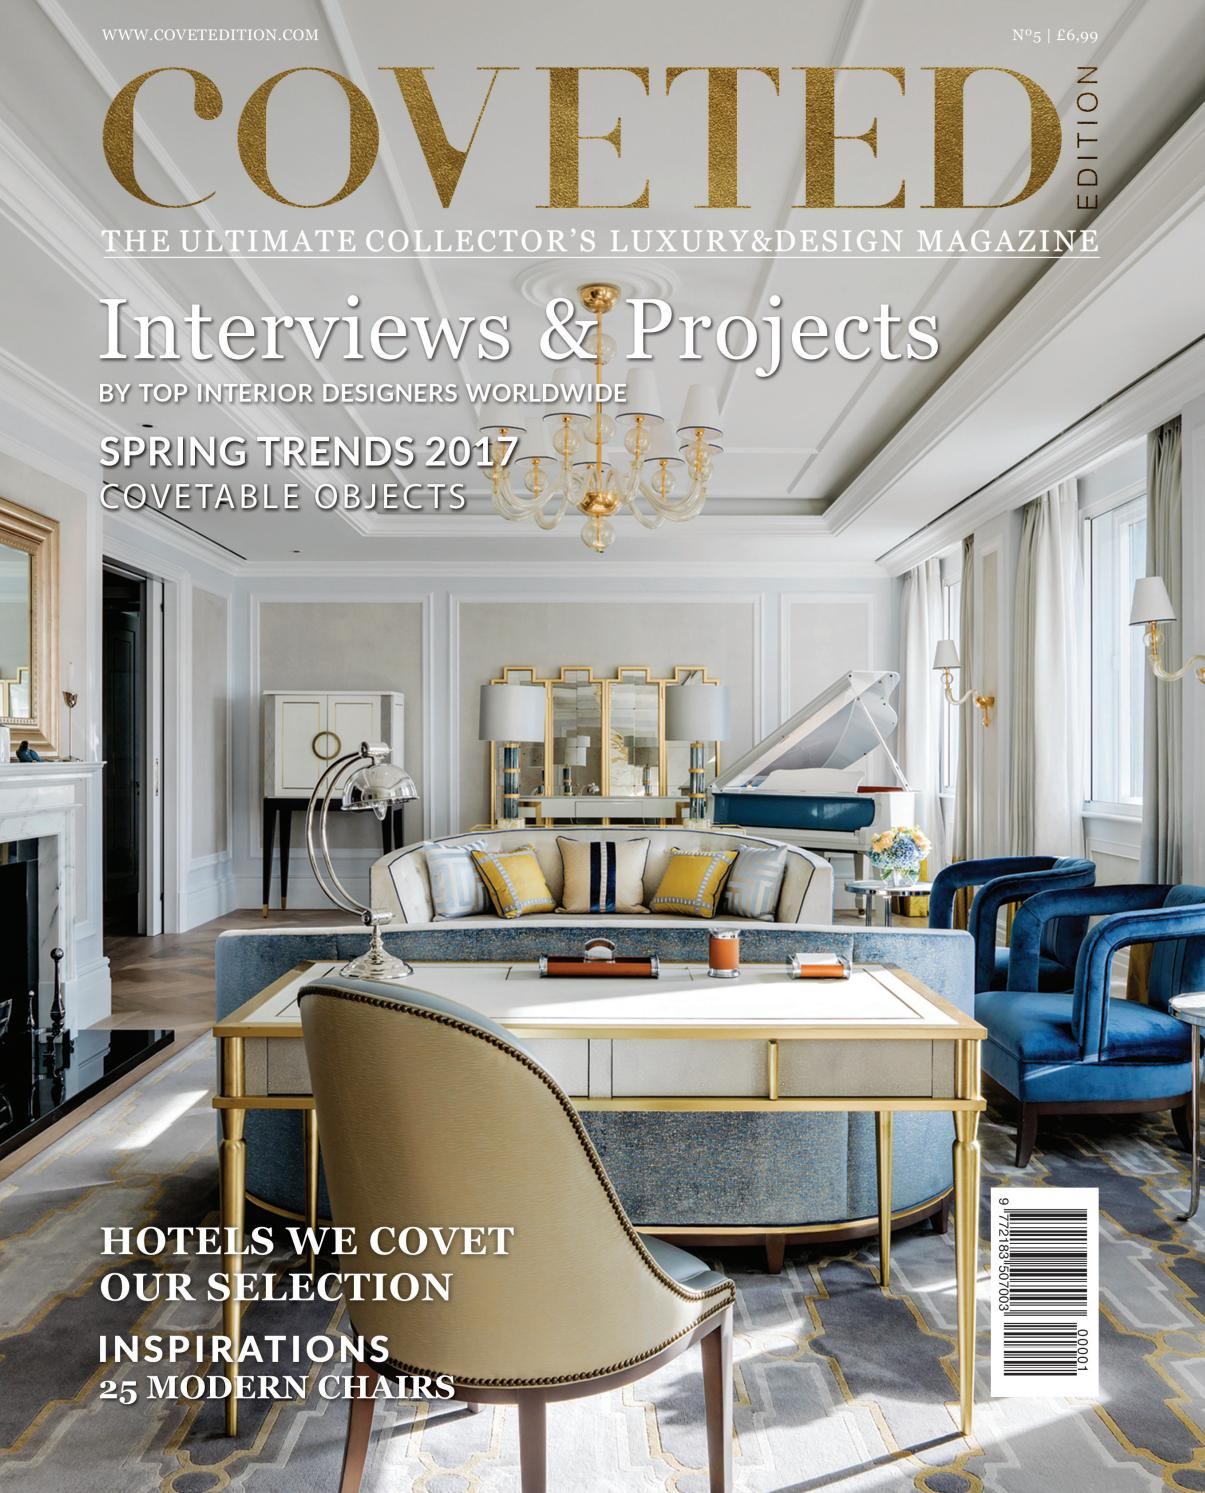 Coveted Magazine 5th Edition by Trend Design Book - issuu